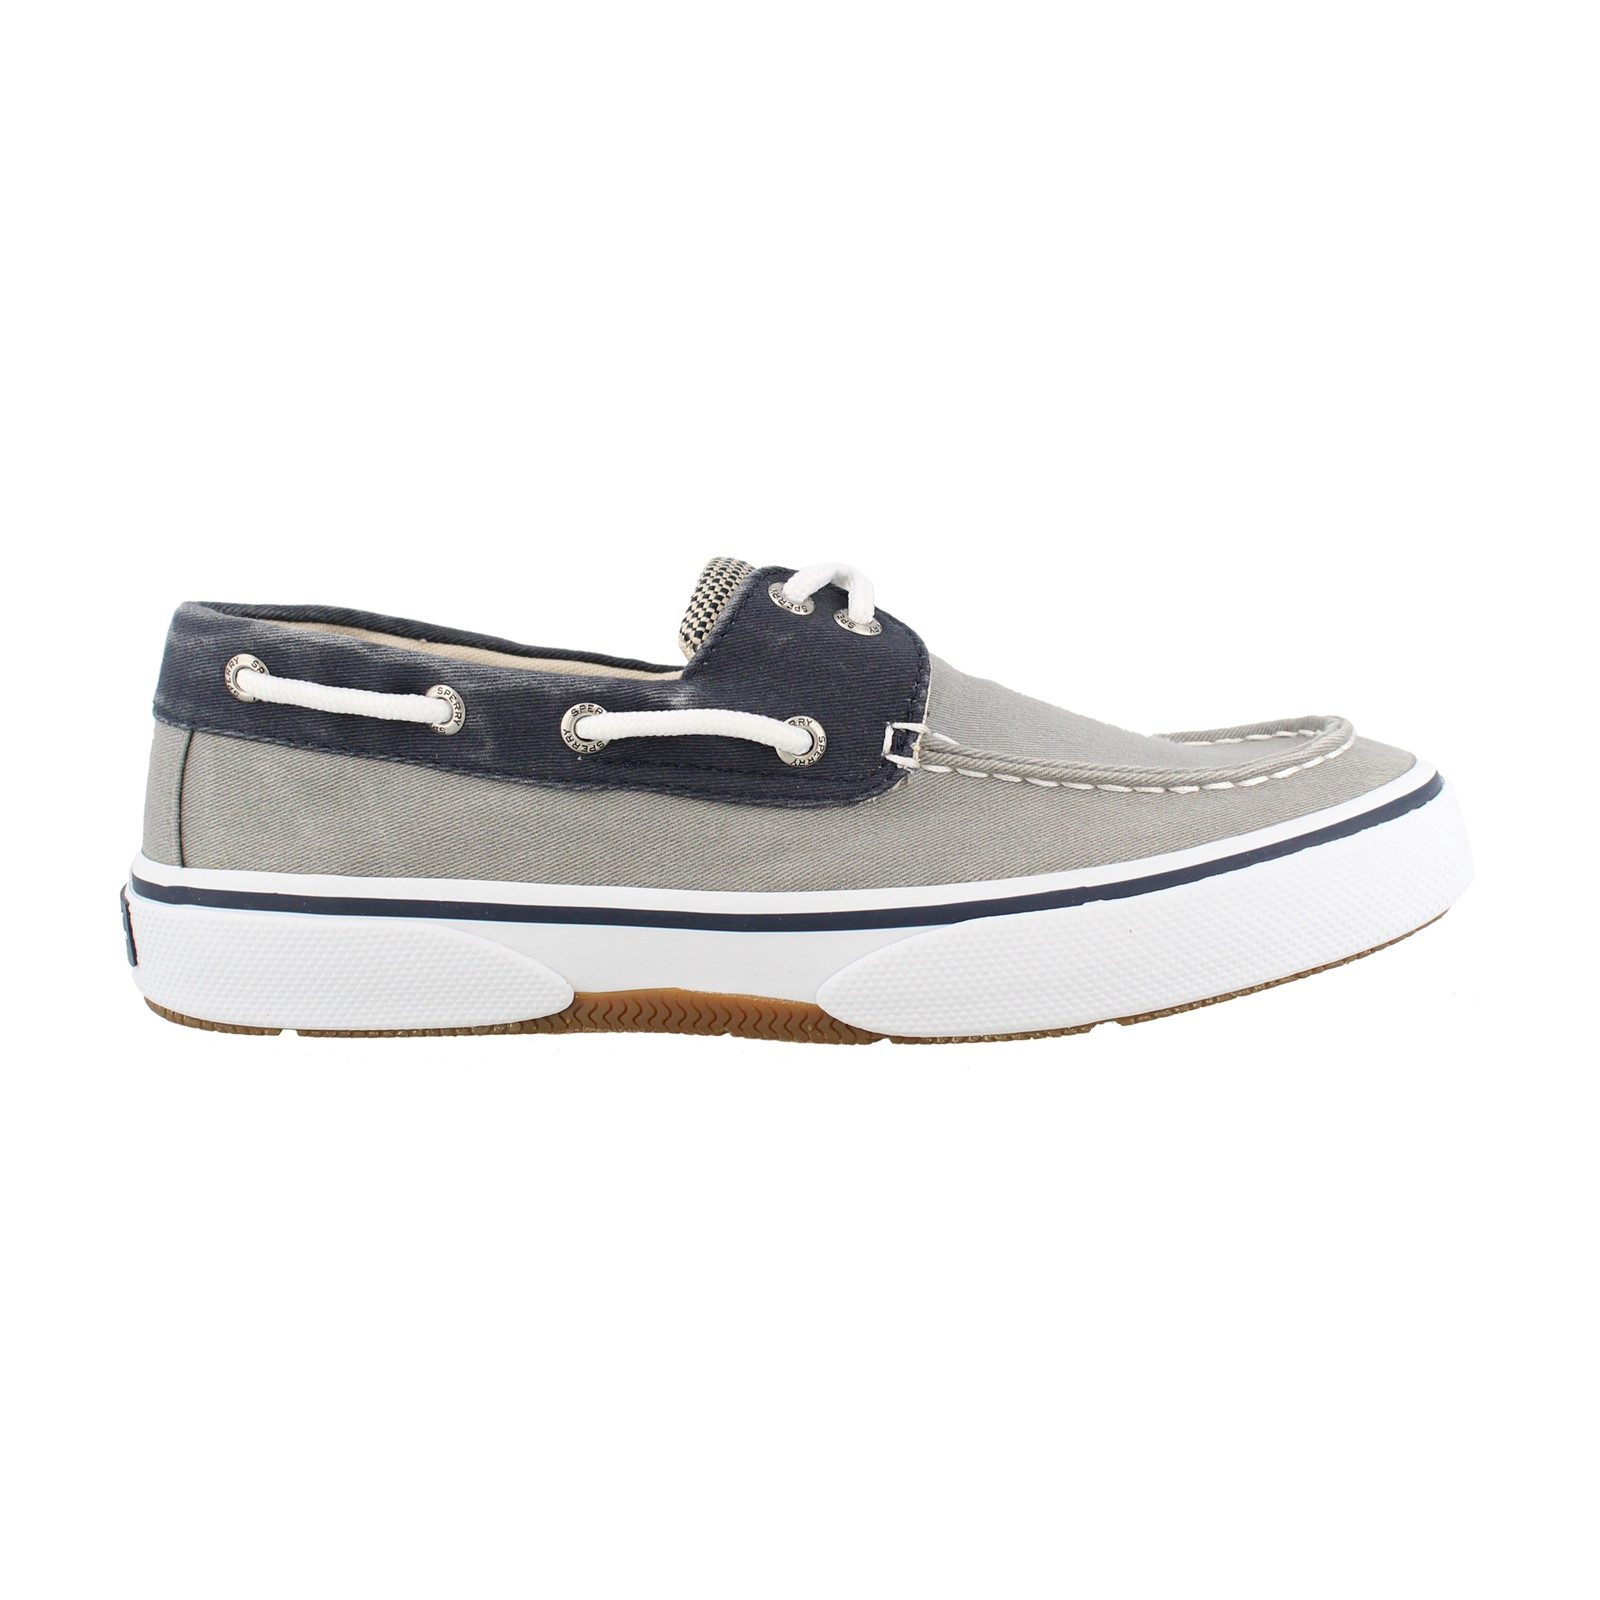 4f627c61 Men's Sperry, Halyard Lace up Boat Shoe